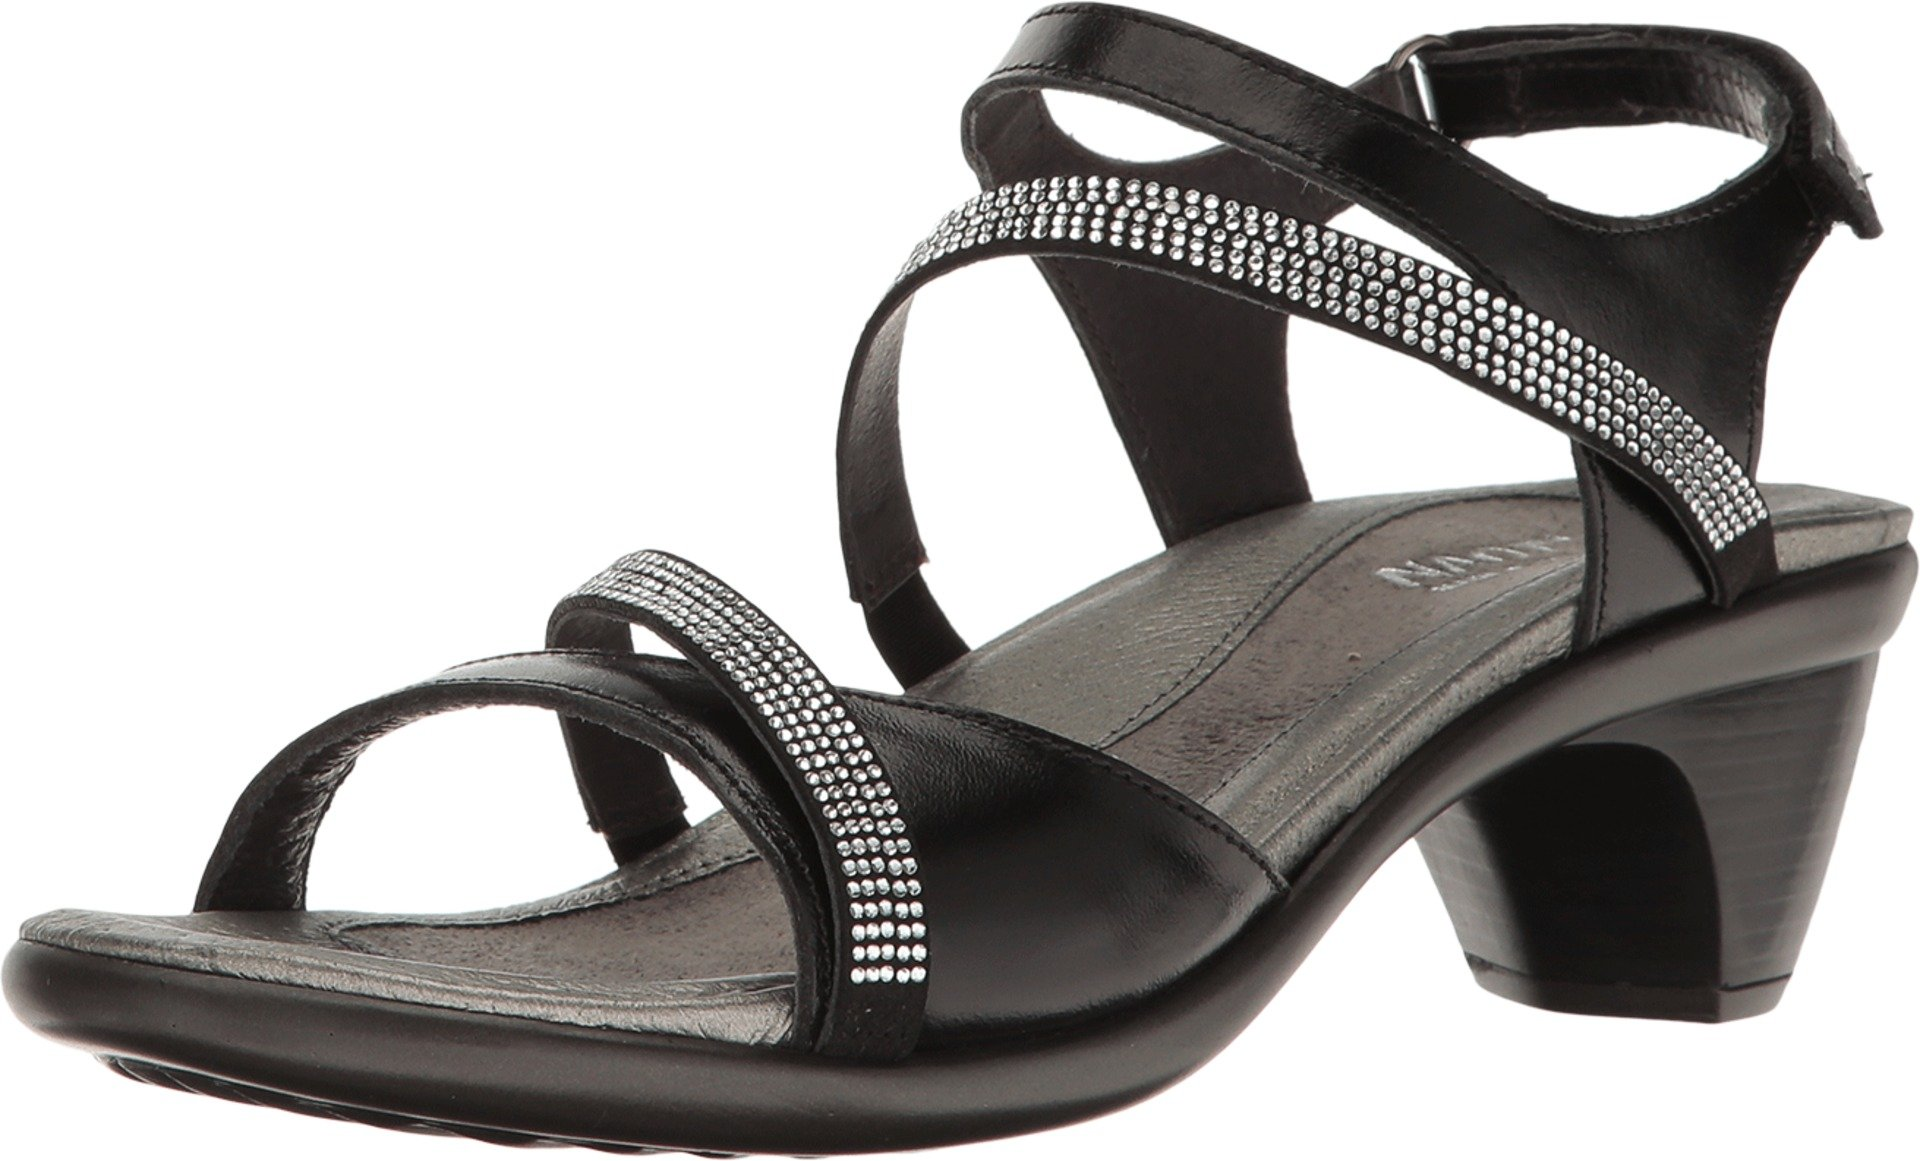 Naot Women's Innovate Sandals, Black, Leather, Microfiber, Latex, Cork, 42 M EU, 11-11.5 M